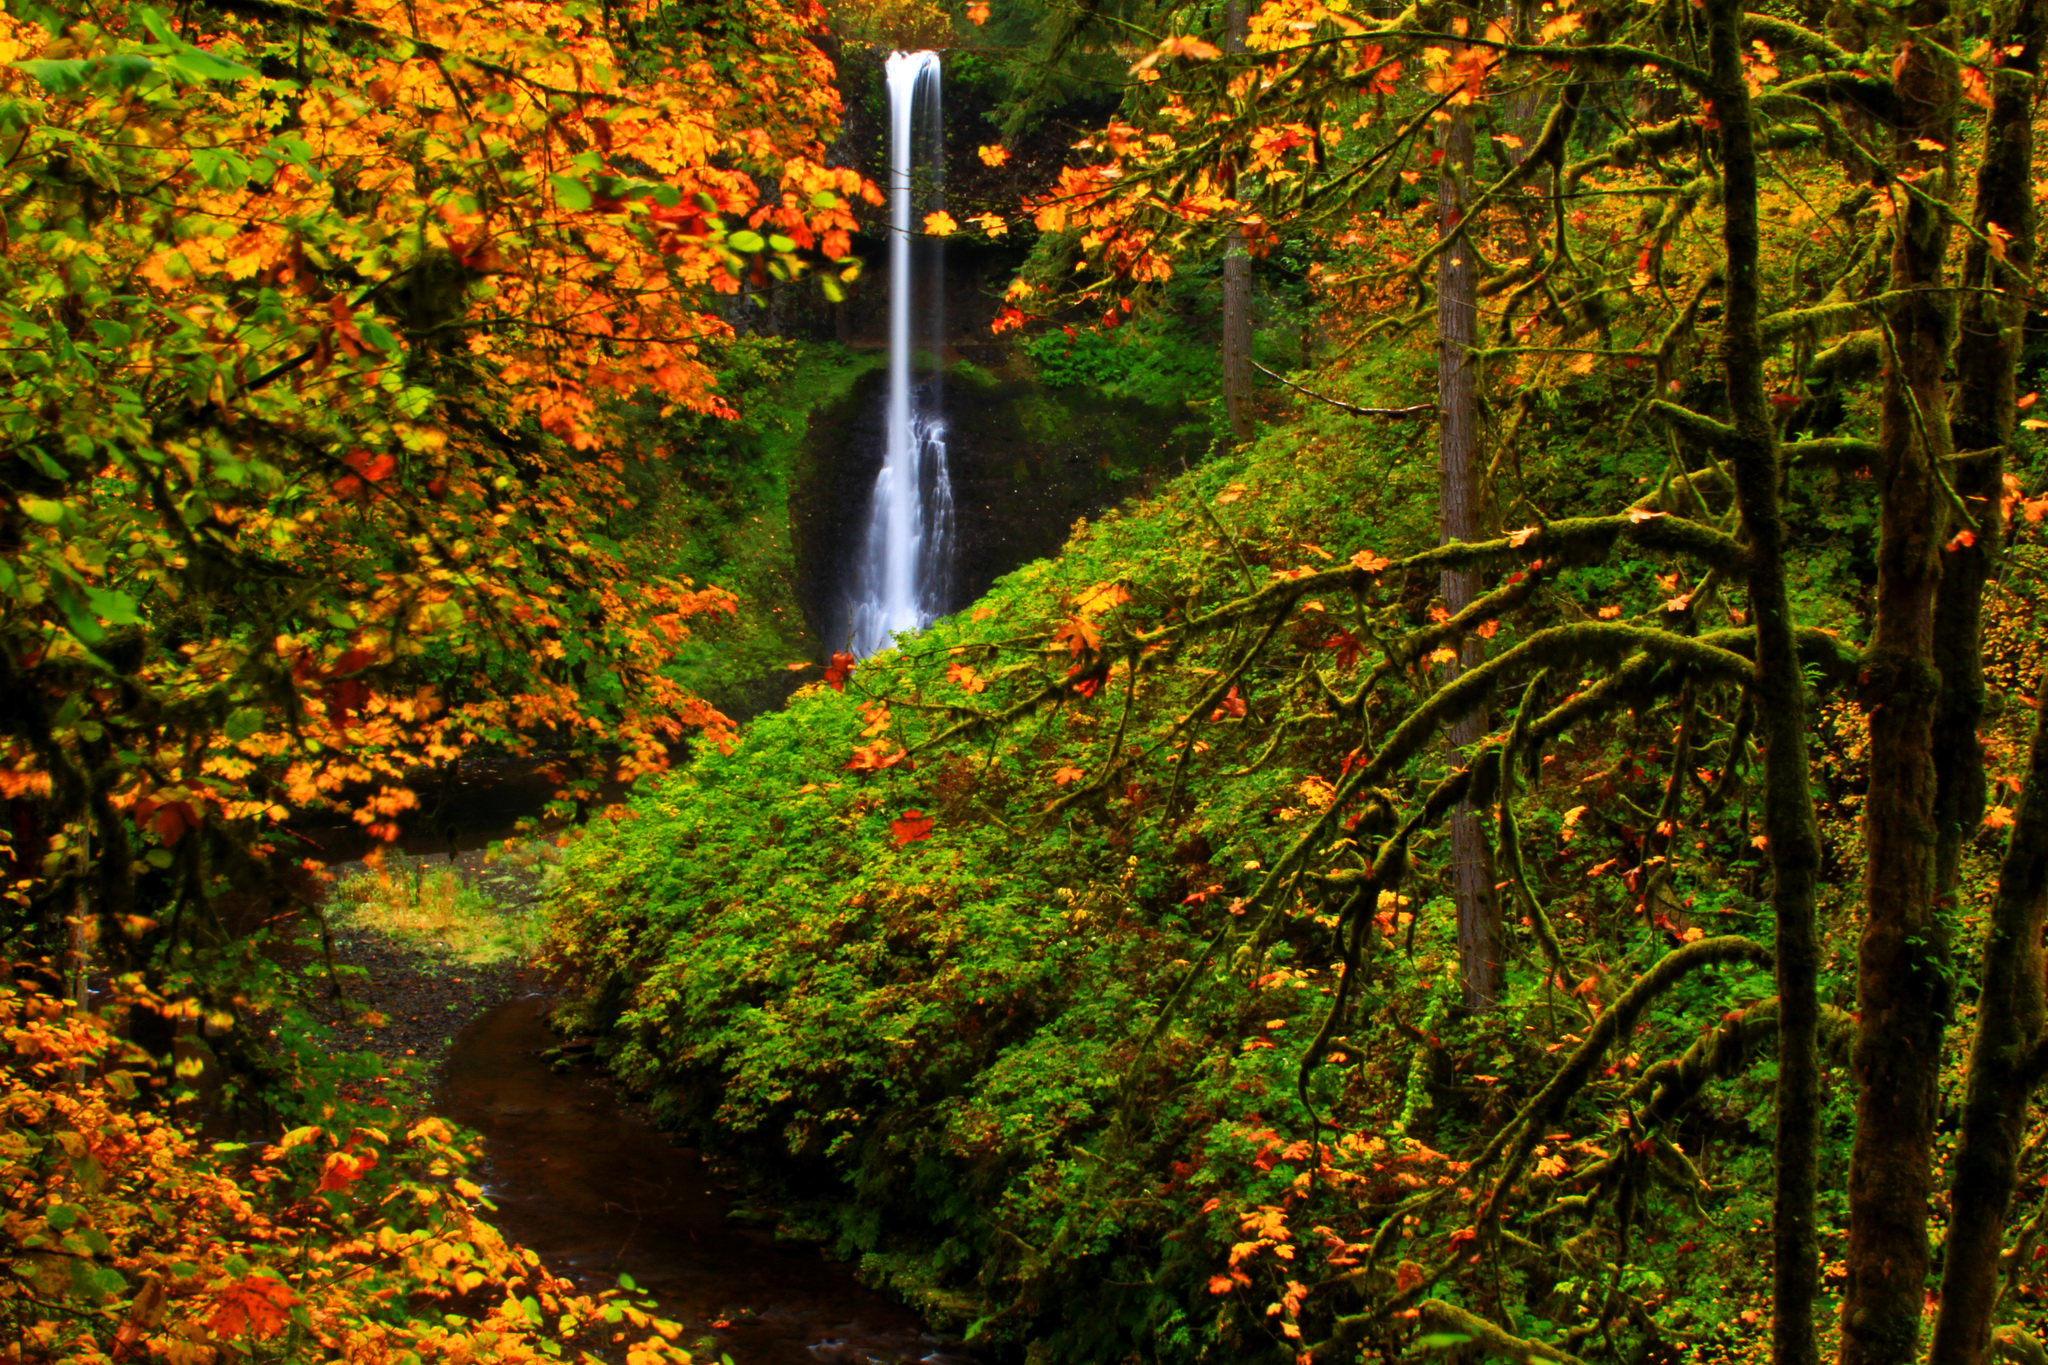 Iphone Wallpaper Waterfall Silver Falls State Park Oregon In Autumn Hd Wallpaper